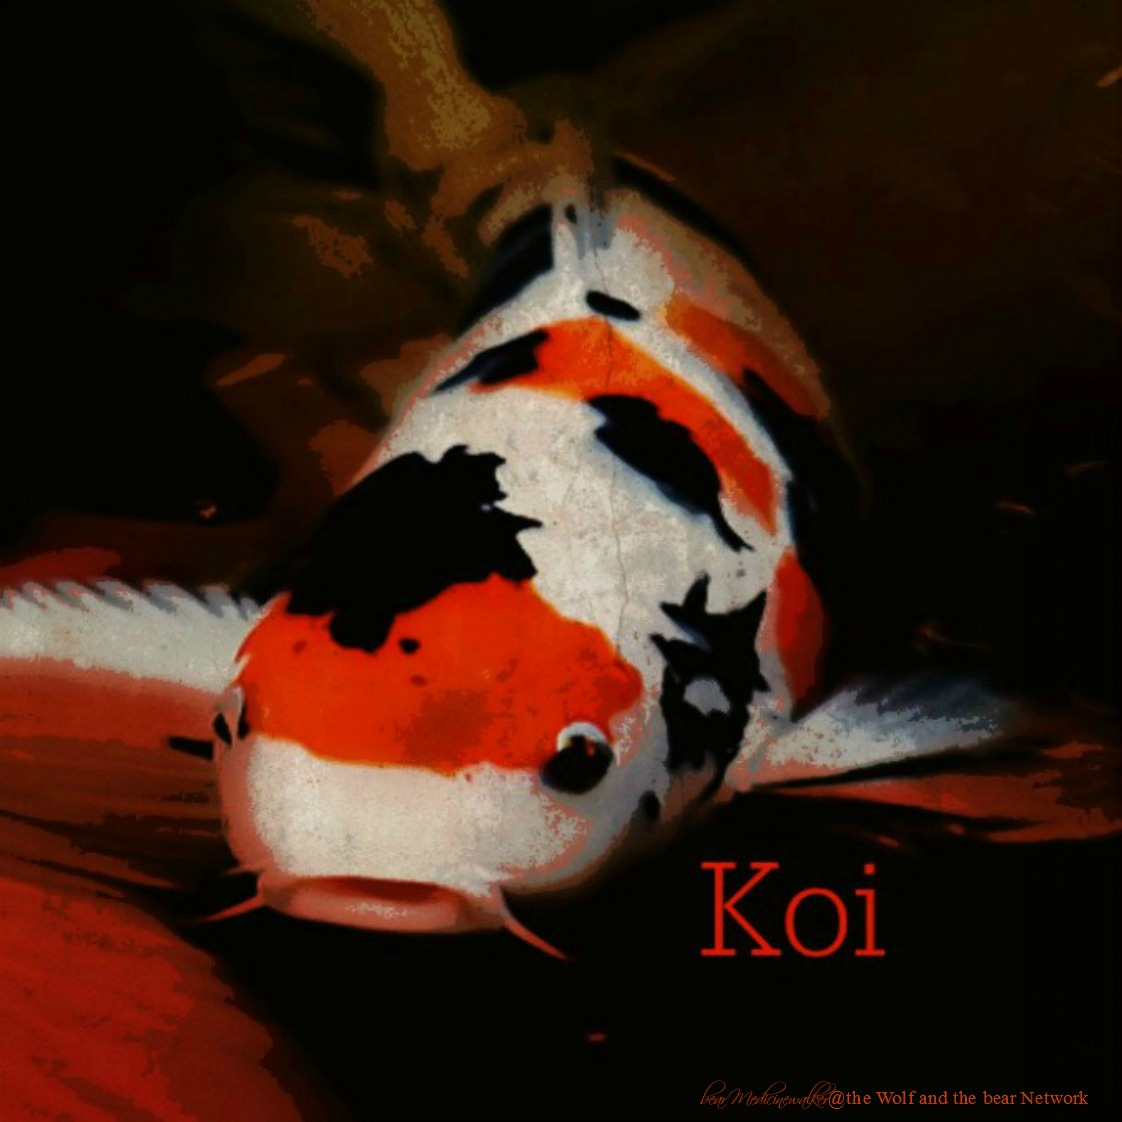 Best images collections hd for gadget windows mac android for Koi fish living conditions